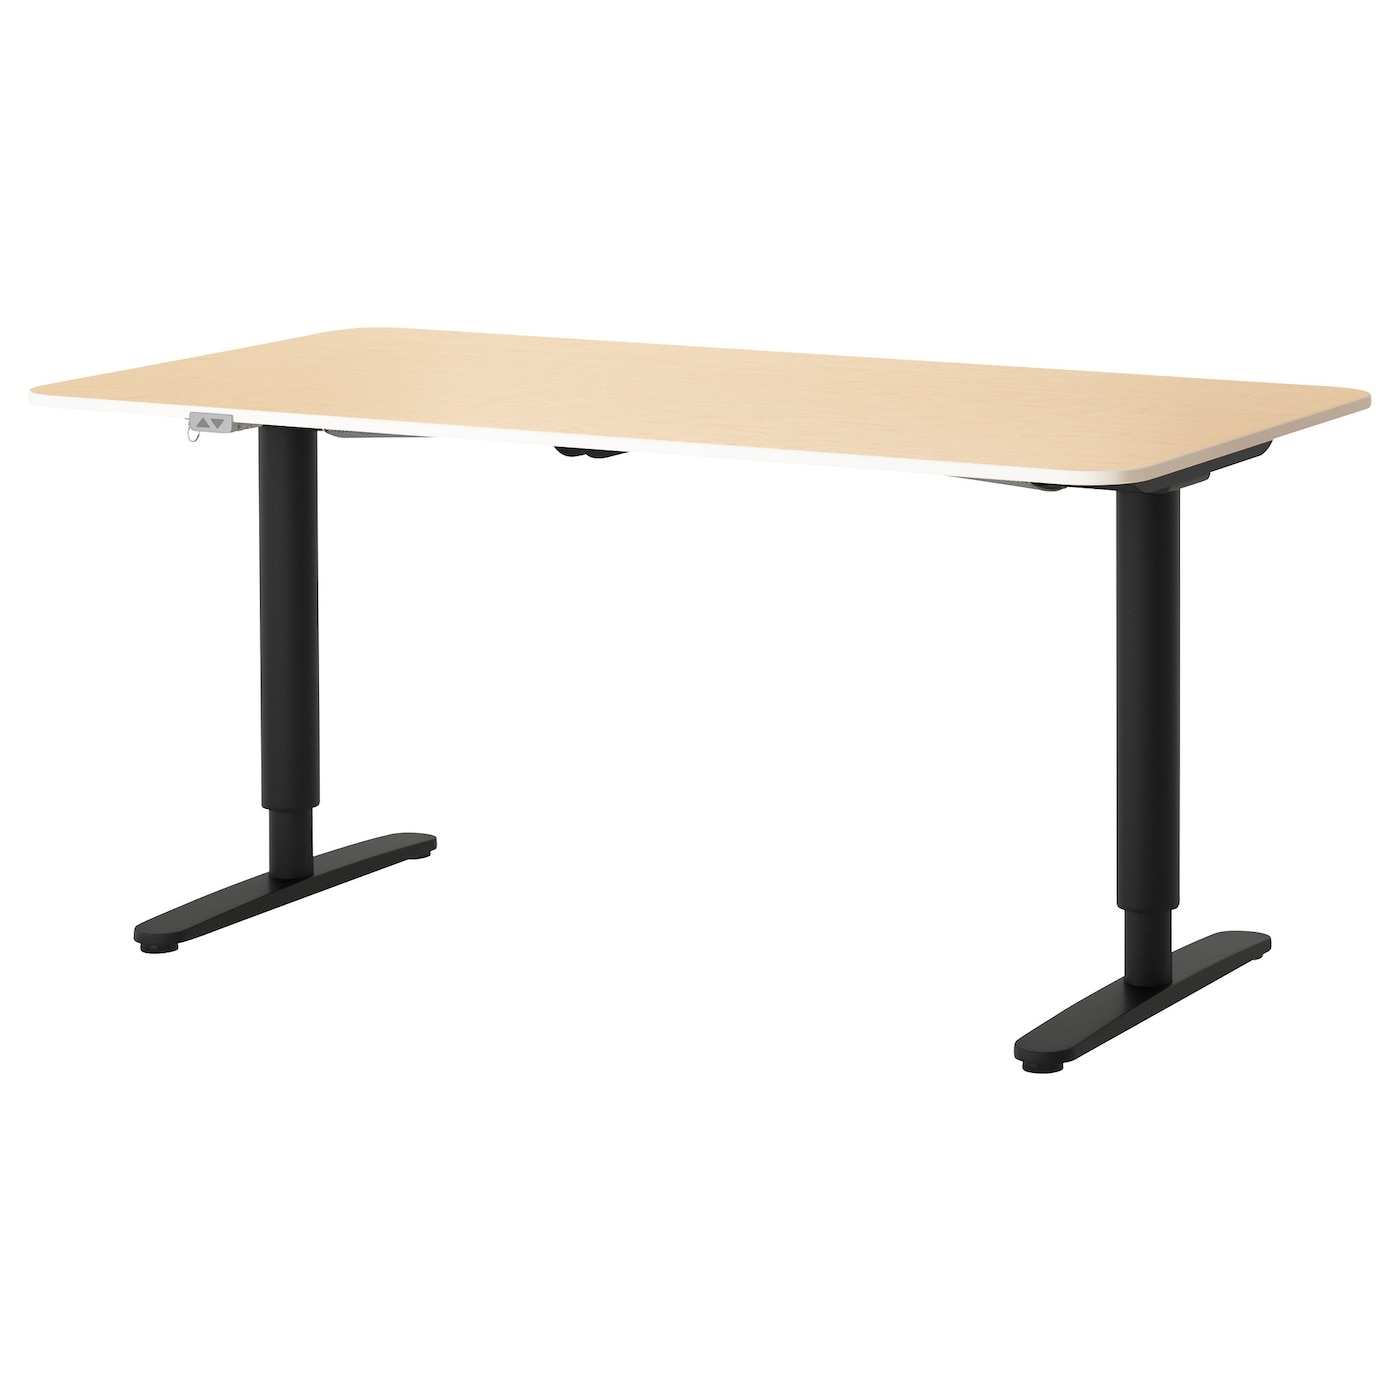 up ikea then size desks sit gray converter desk adjustable full congenial zq height hydraulic new sitstand standing stand